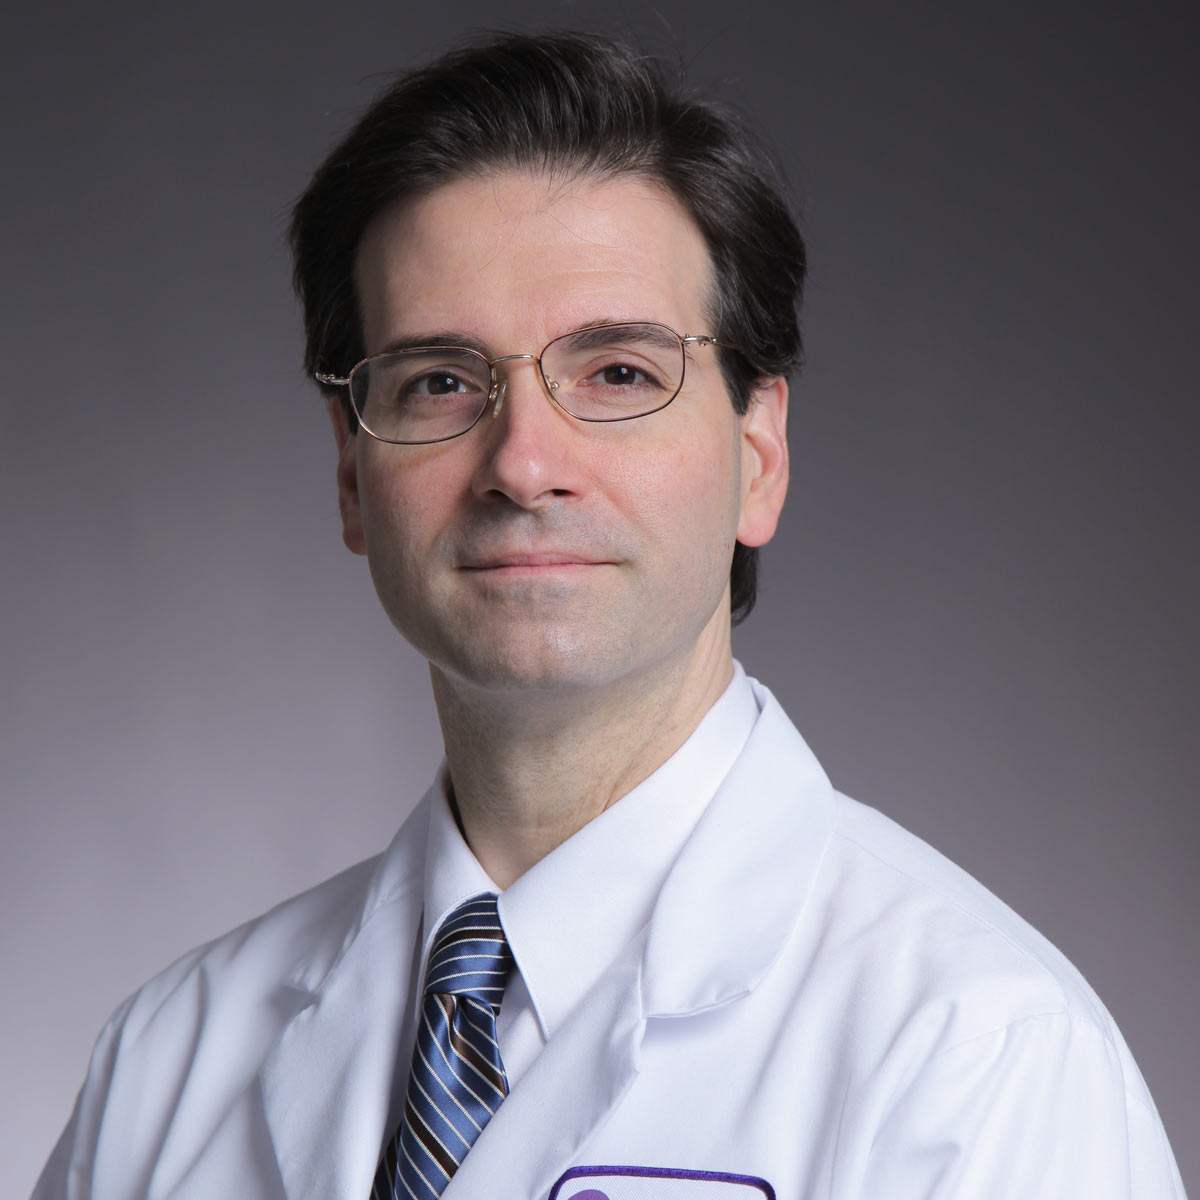 Joseph Devito at [NYU Langone Medical Center]